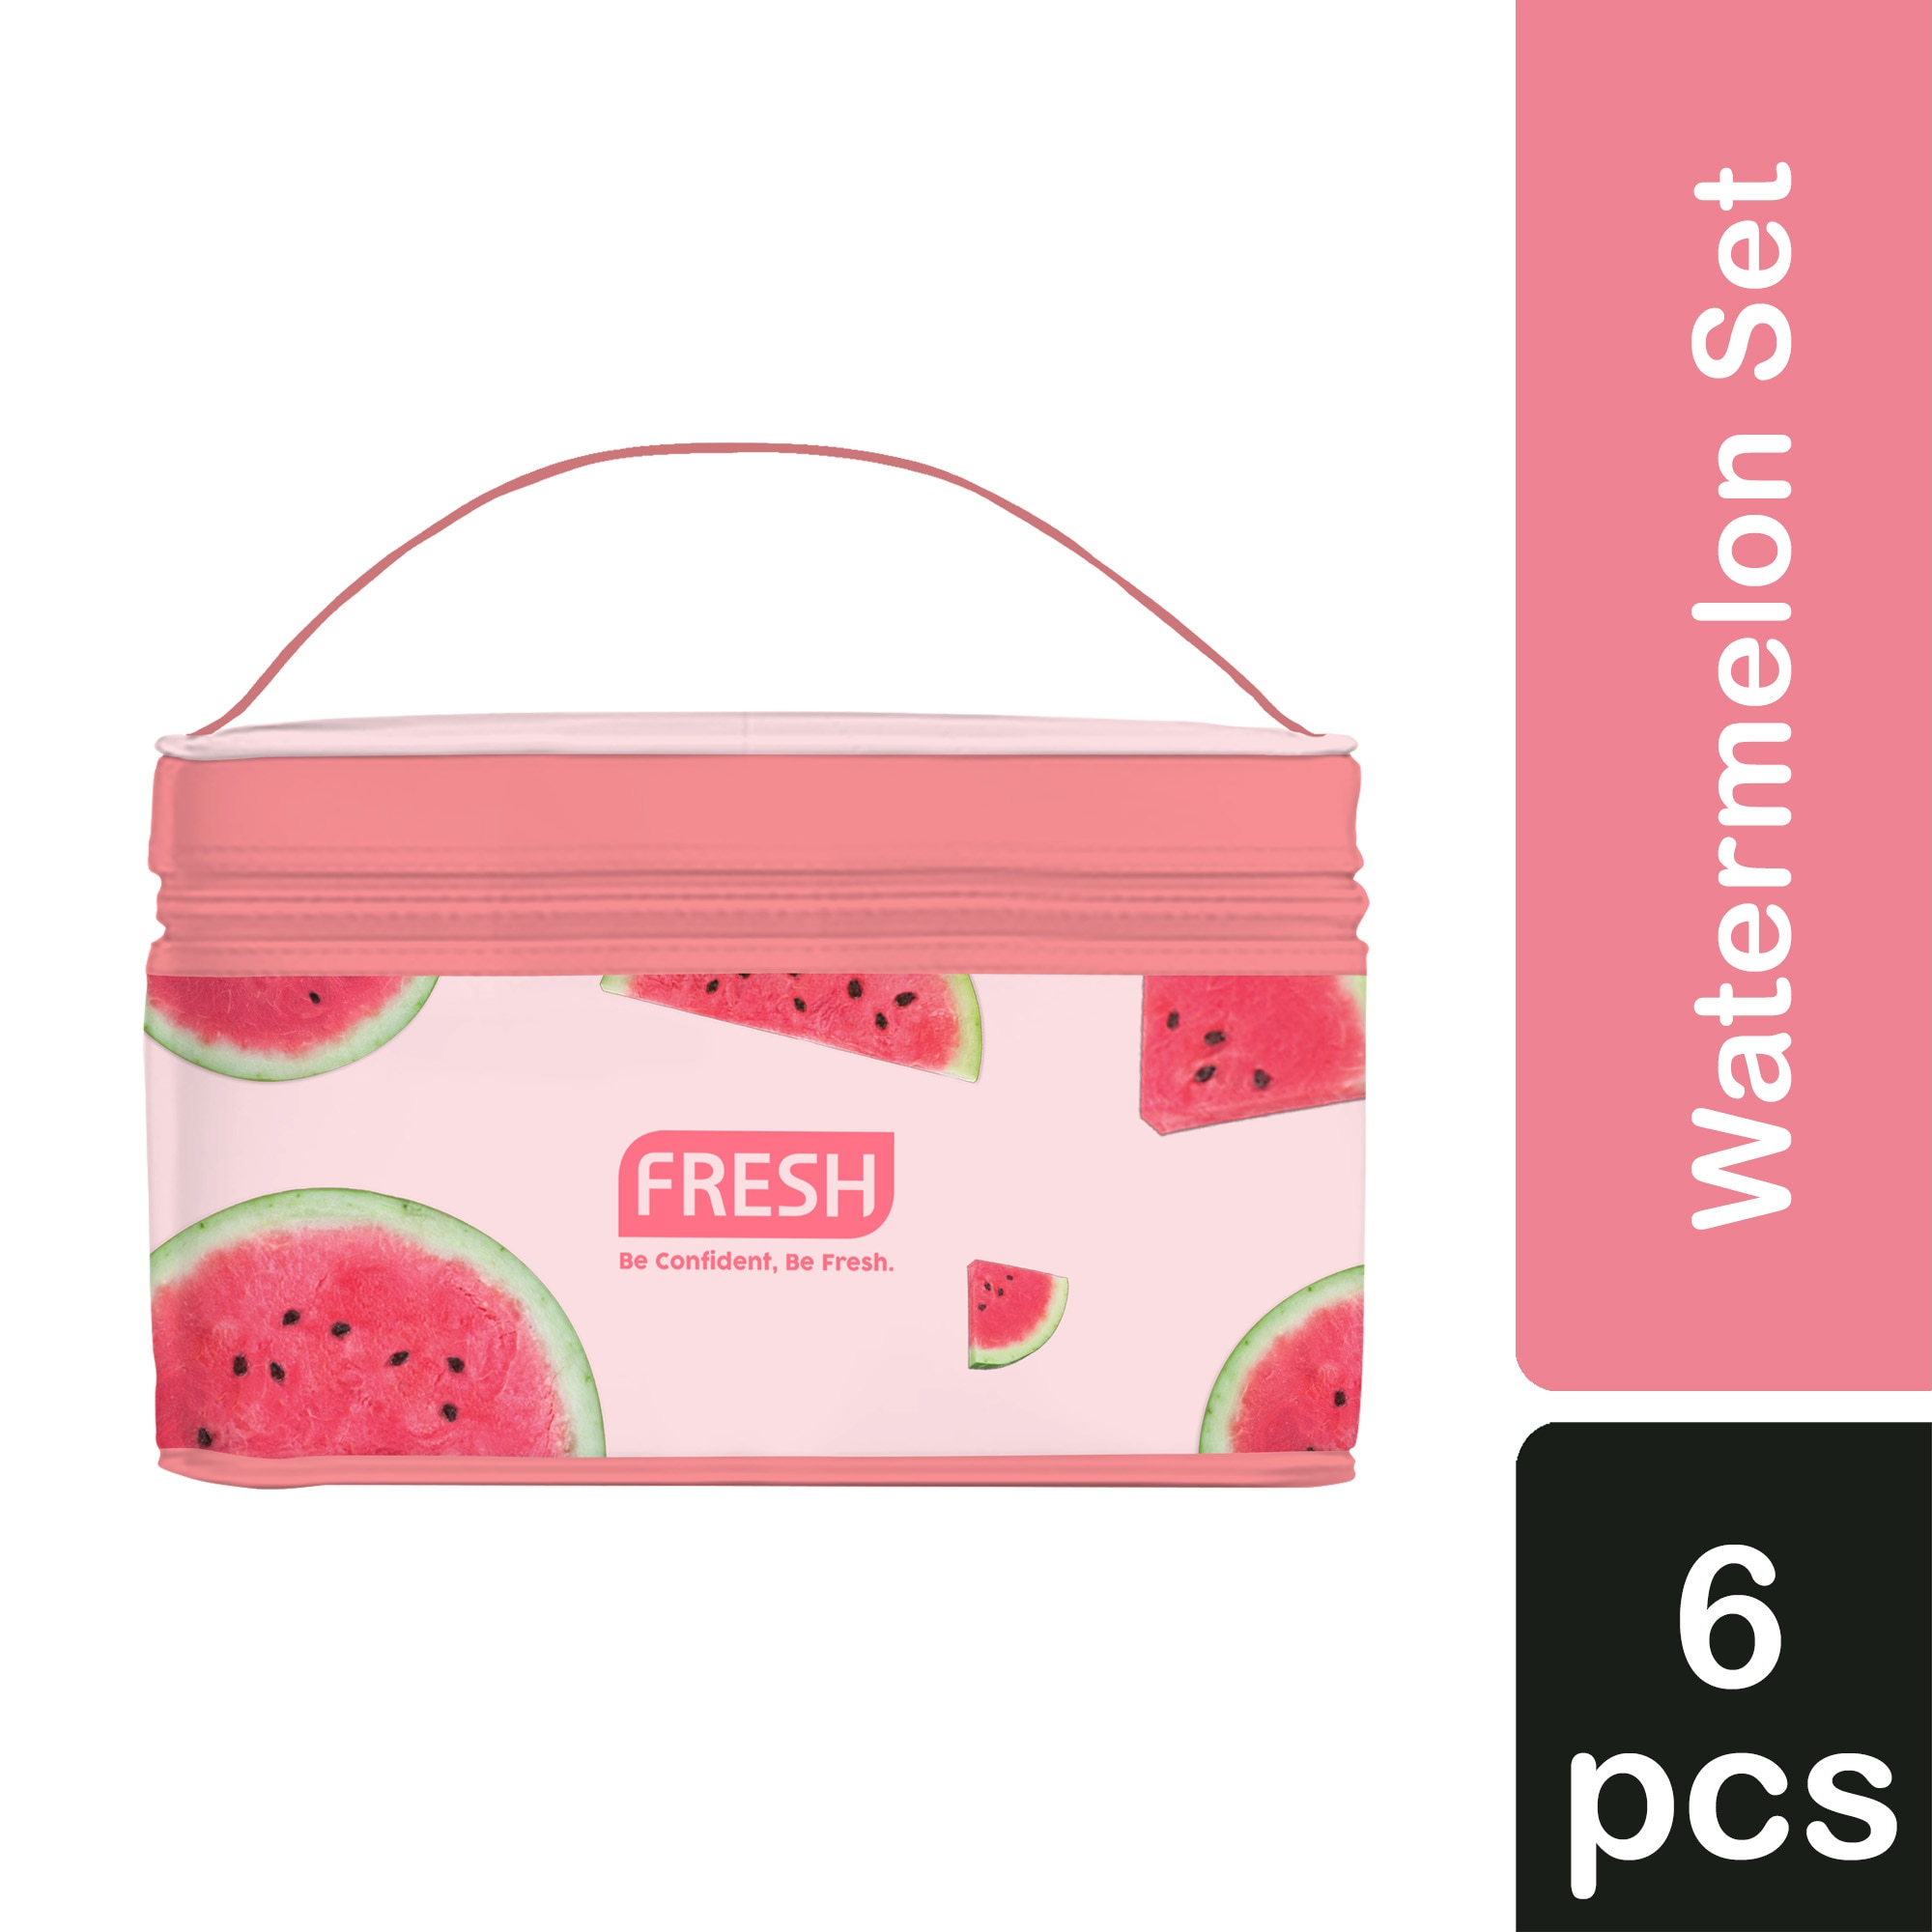 FRESHWatermelon Set (Jelly Serum Soap + Jelly Serum Mist + Soothing Gel Lotion + Jelly Peel + Sleeping Pack + FREE Bag),For WomenHELLOWT